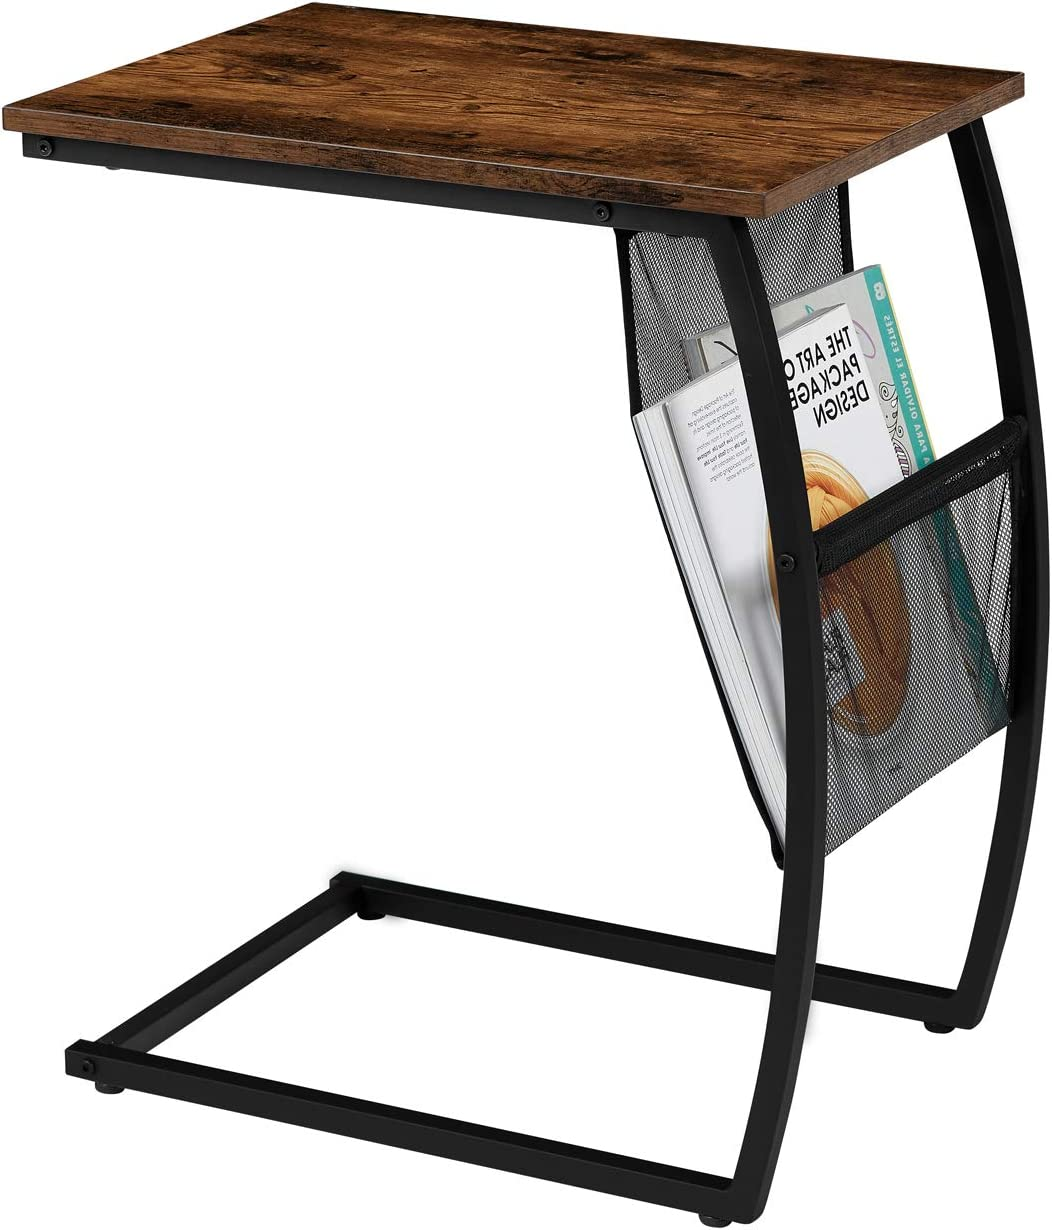 EKNITEY C Shaped Side End Table, Rustic Sofa Table Vintage Couch Table w/Side Pocket for Living Room Coffee Snack Laptop